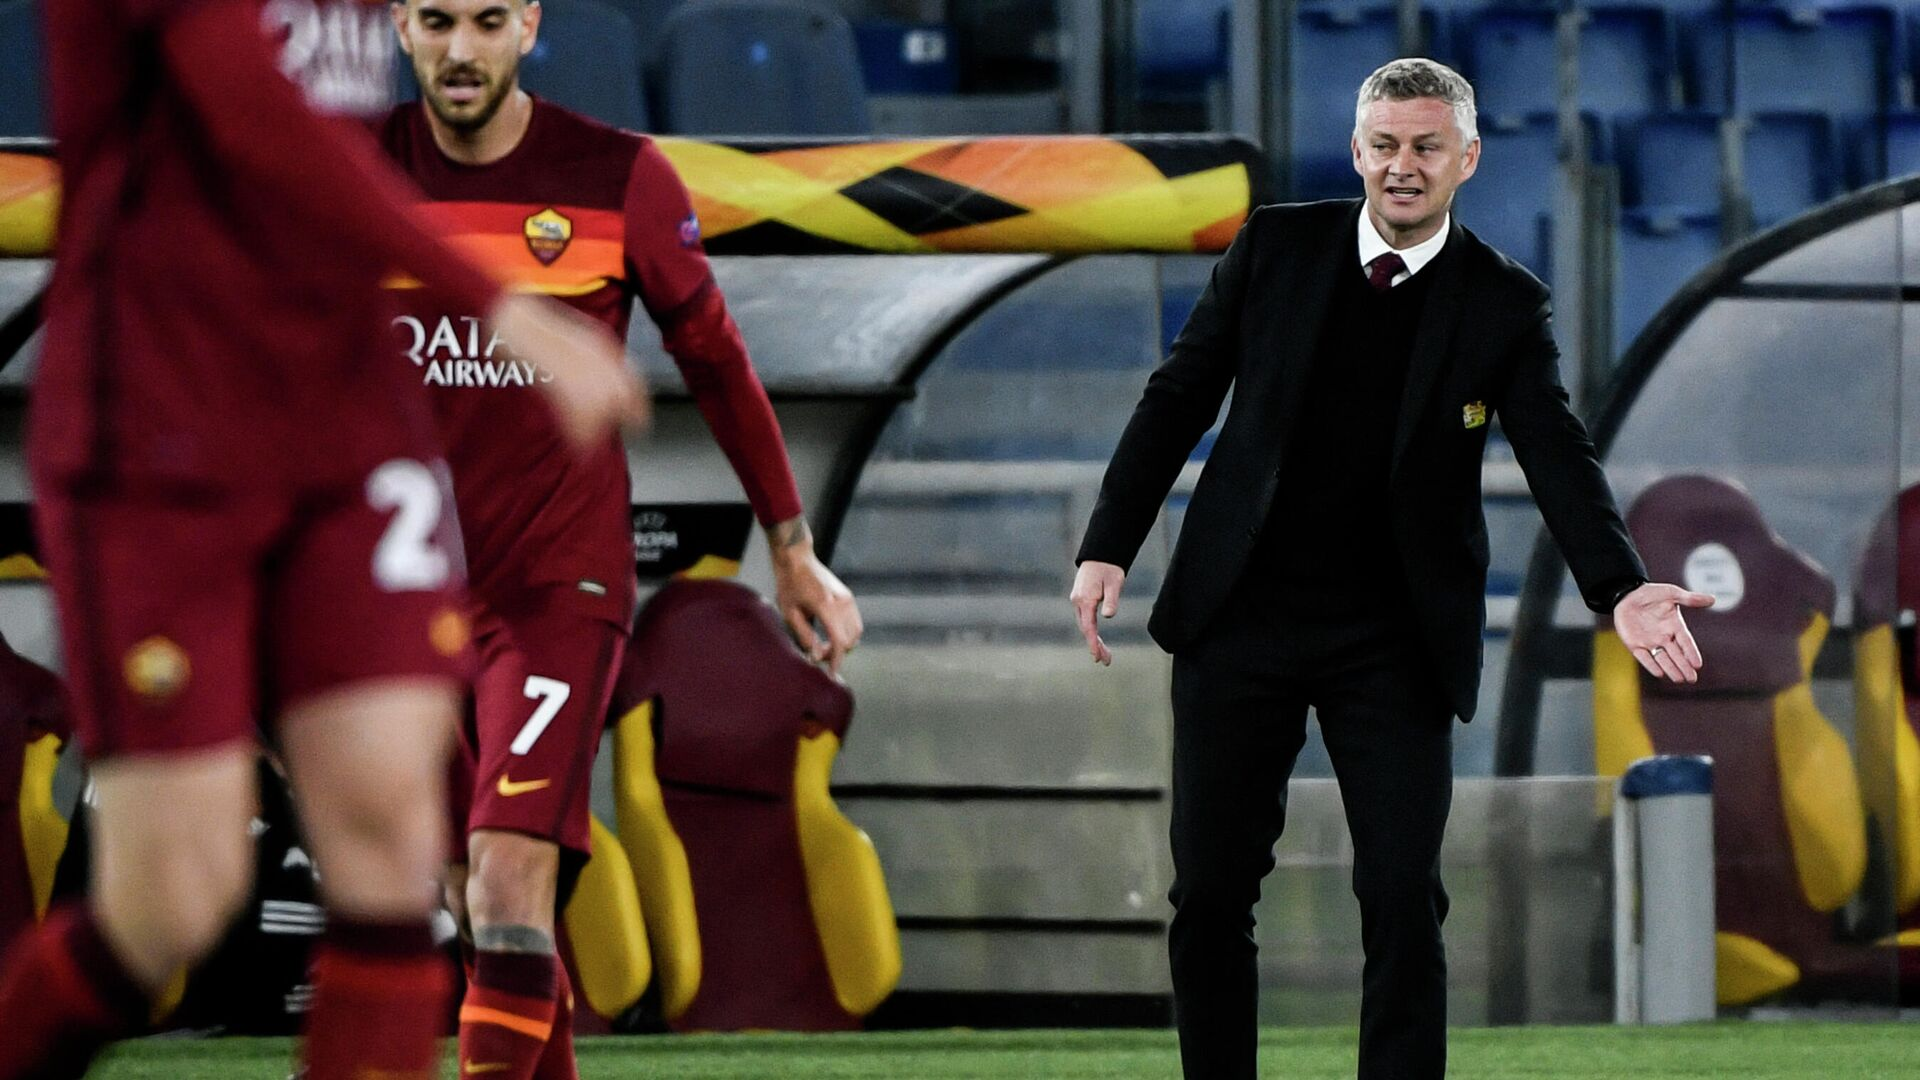 Manchester United's Norwegian coach Ole Gunnar Solskjaer reacts during the UEFA Europa League semi-final second leg football match between AS Roma and Manchester United at the Olympic Stadium in Rome, on May 6, 2021. (Photo by Filippo MONTEFORTE / AFP) - РИА Новости, 1920, 07.05.2021